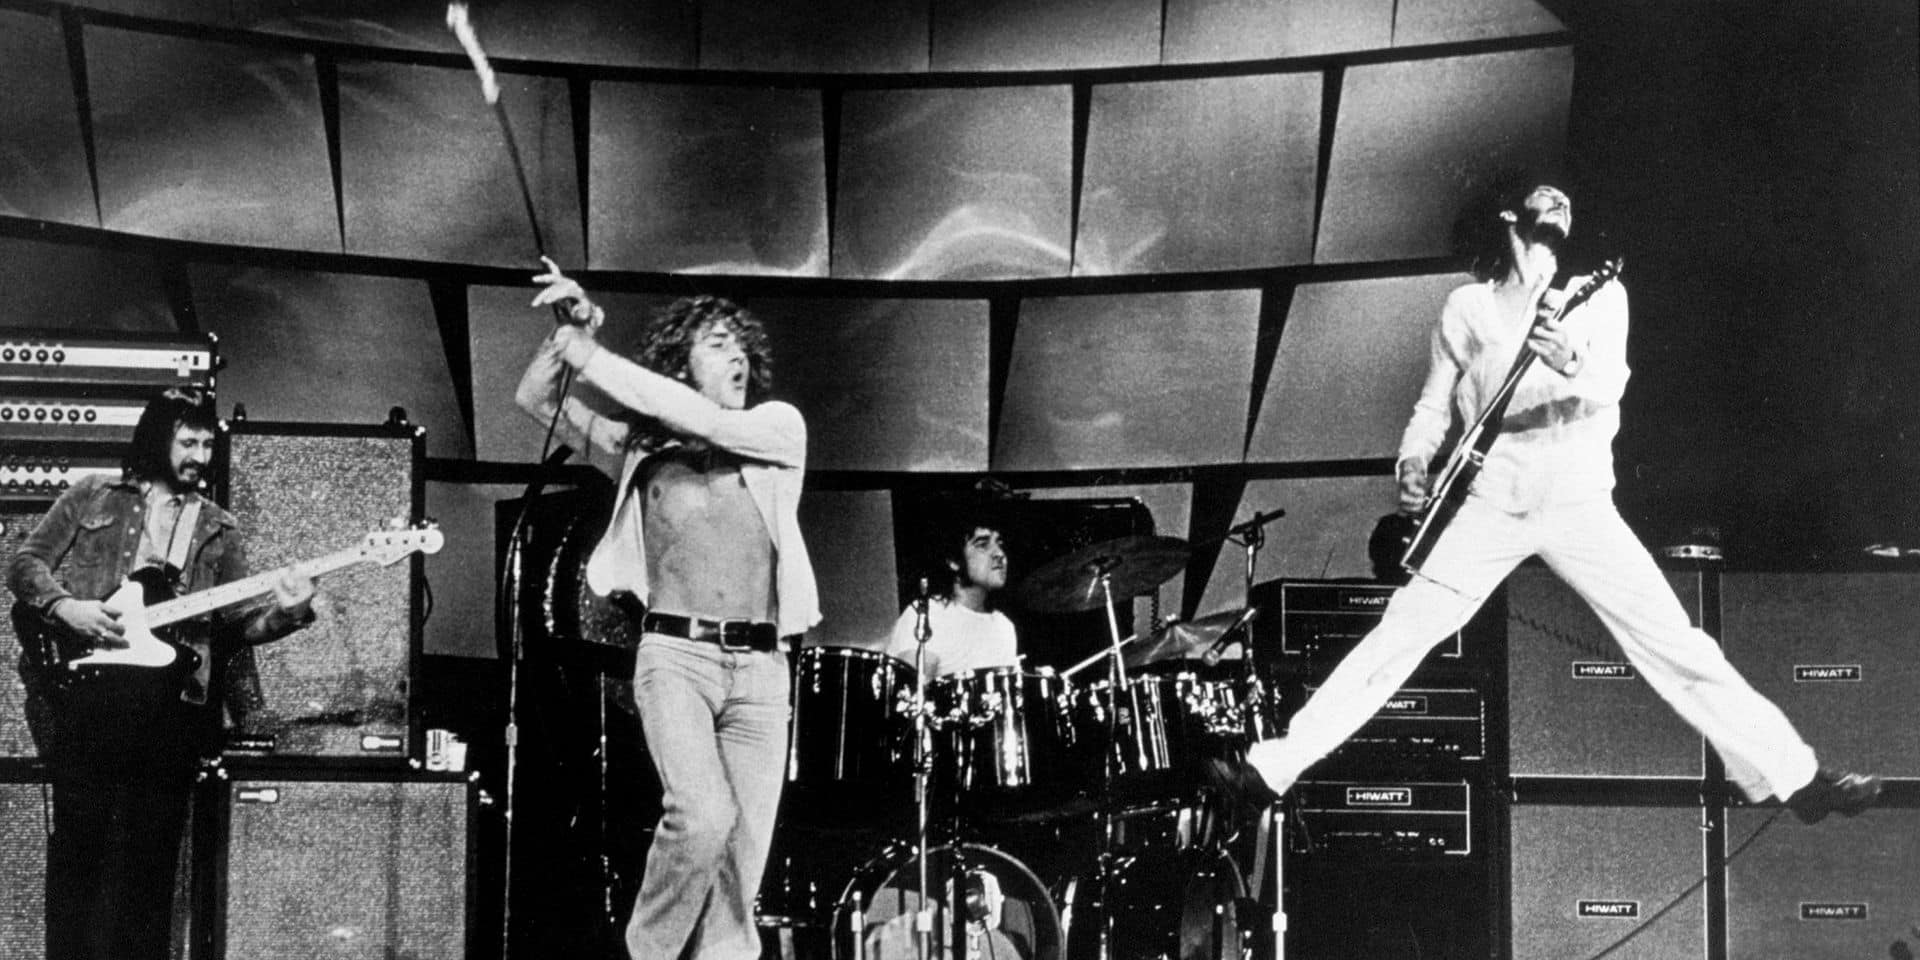 Le groupe The Who en concert en 1969 : John Entwhistle, Roger Daltry, Keith Moon, Pete Townshend --- The Who on stage in 1969 John Entwhistle (bass & rythm guitar) Roger Daltry (singer) Keith Moon (drums) Pete Townshend (lead guitar)